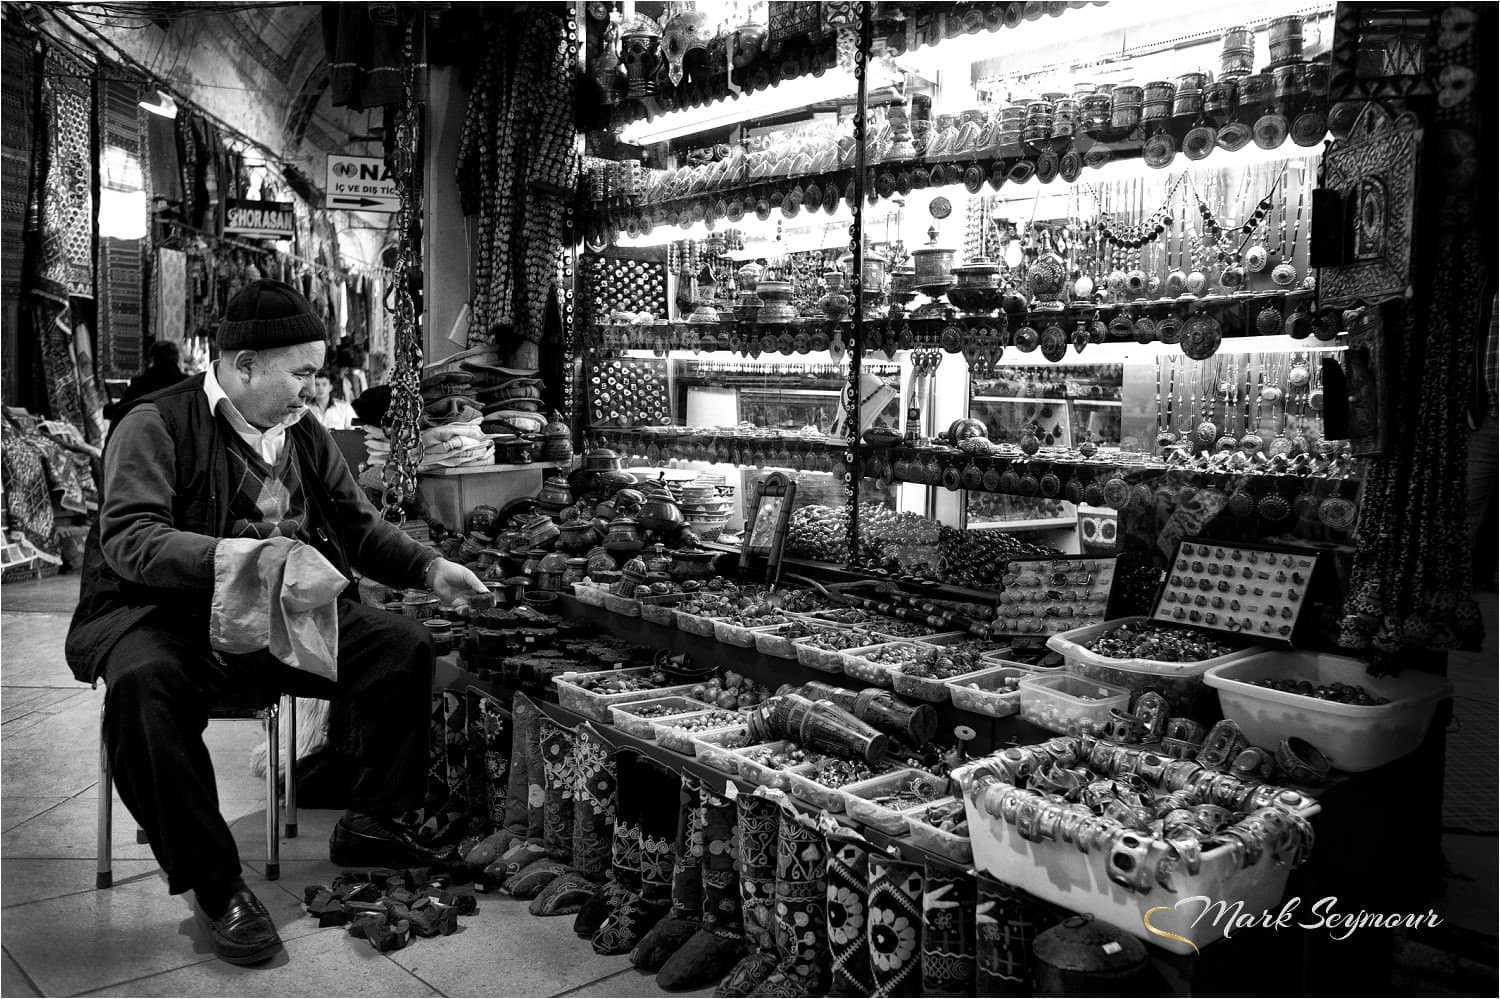 Photographing the markets in Istanbul